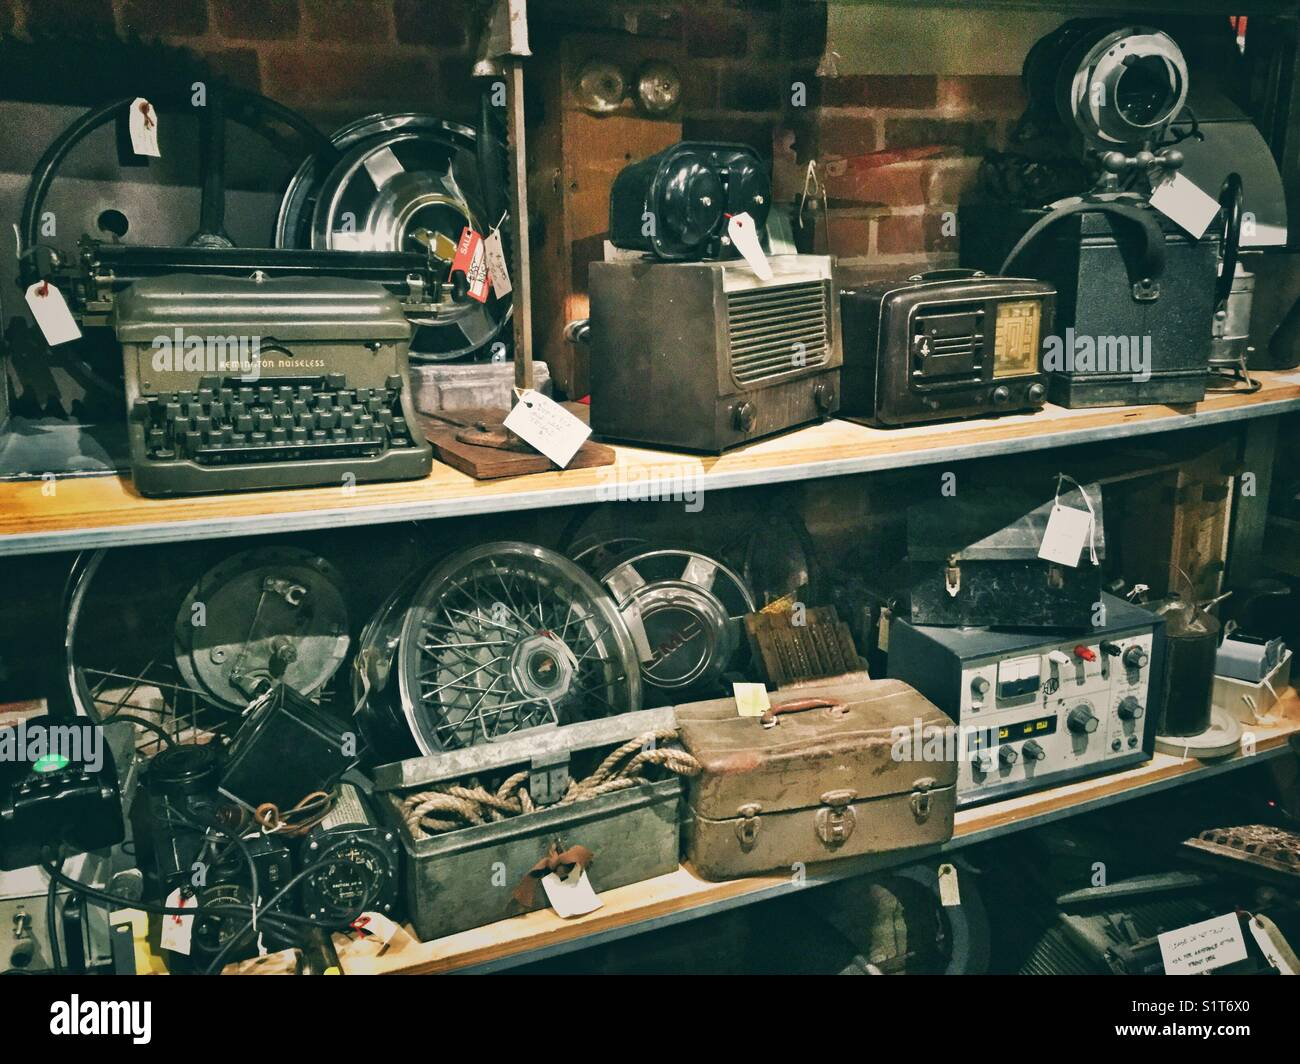 Antique and outdated items for sale. - Stock Image